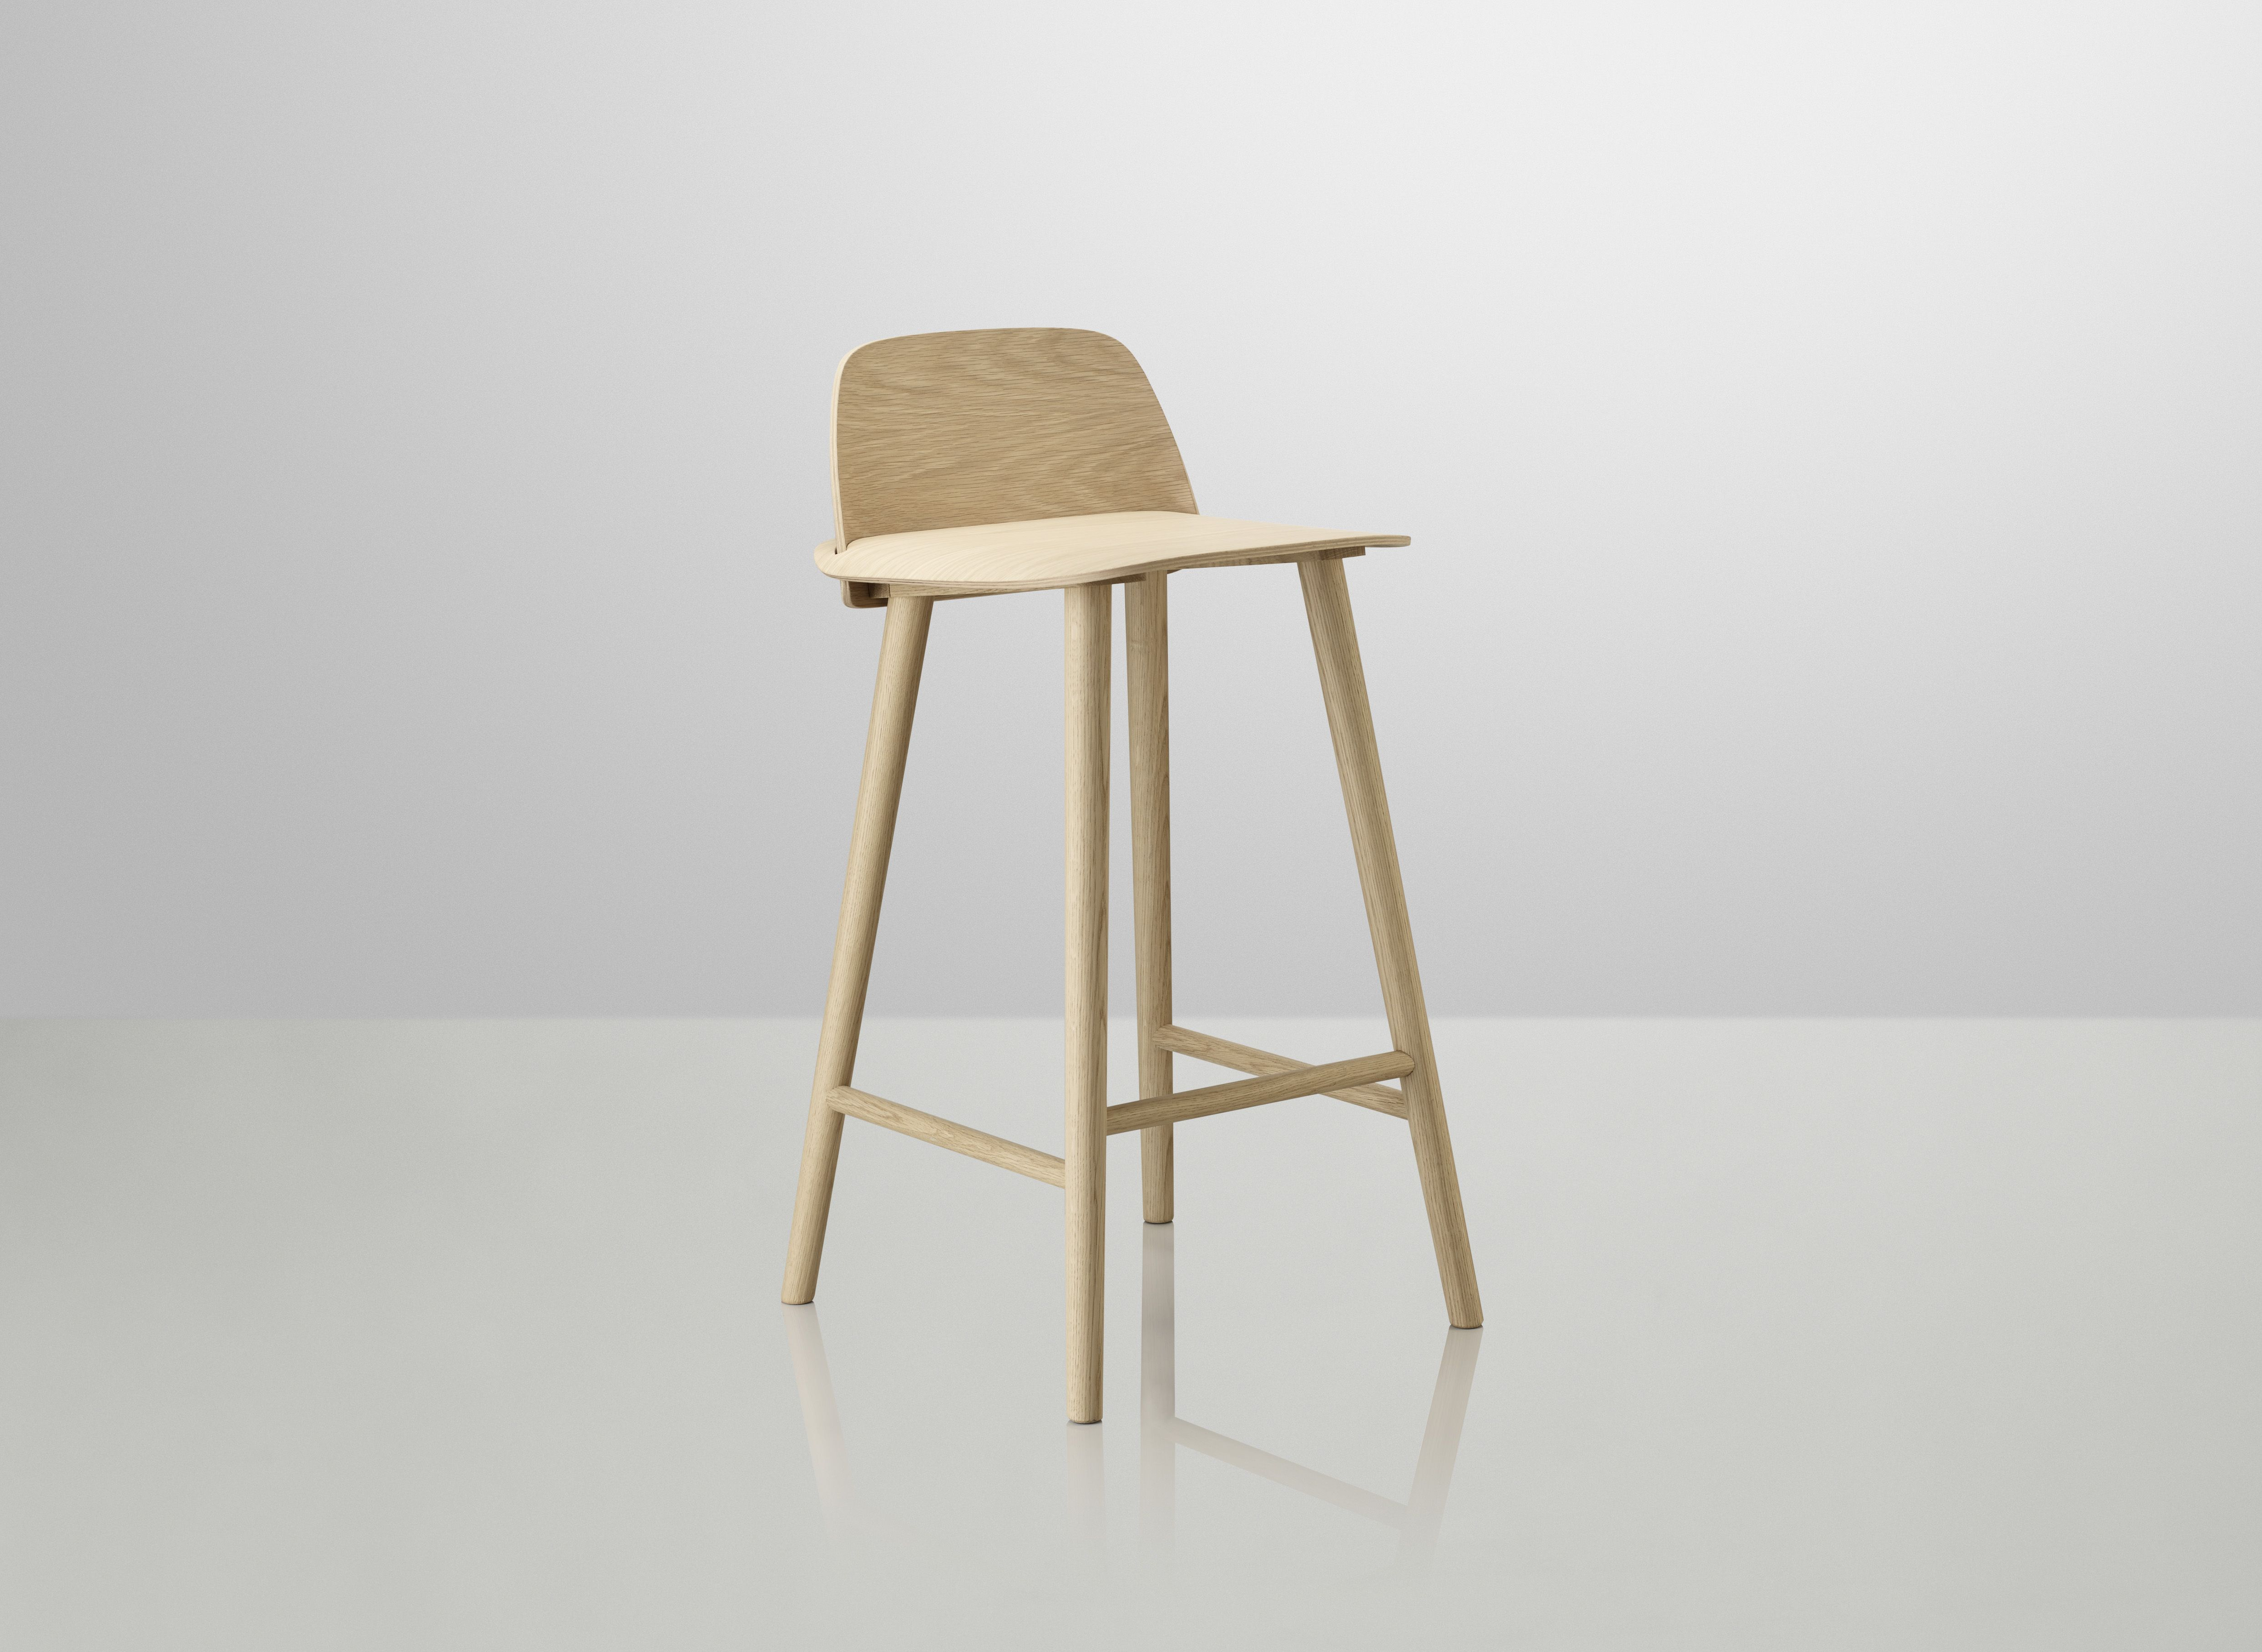 Muuto Nerd Bar Stool. The only bar stool that passes as furniture.